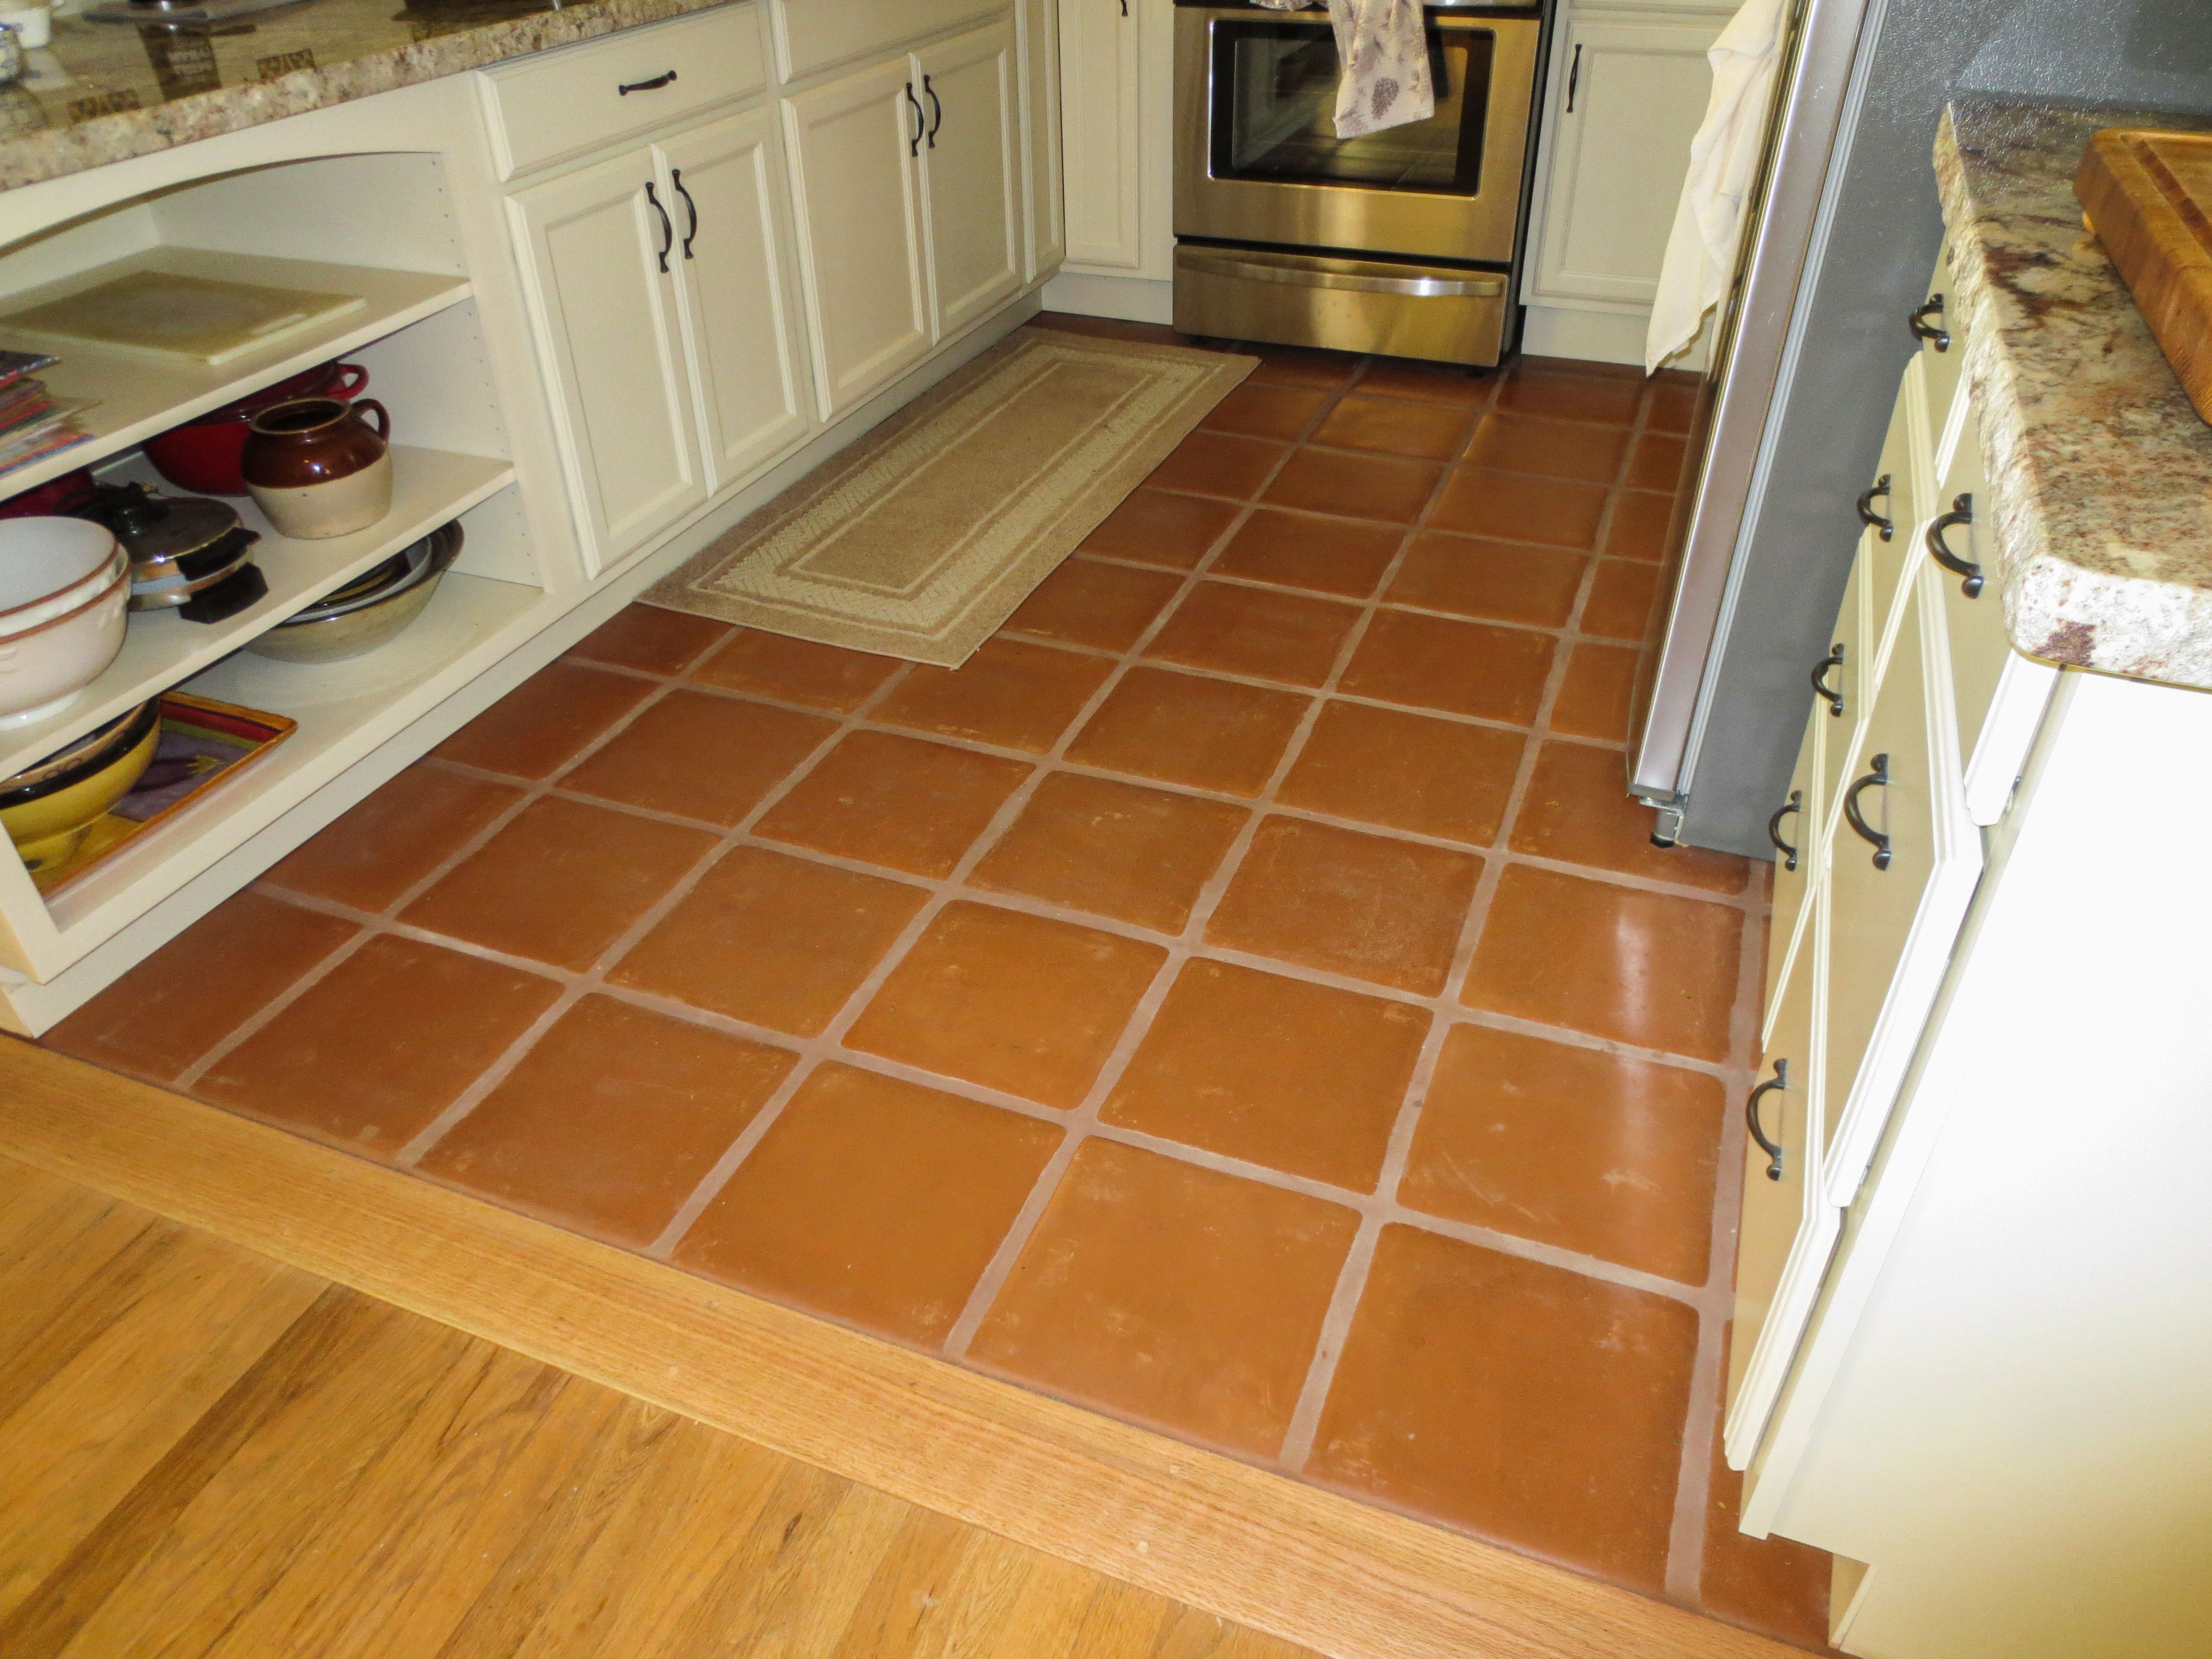 12 X 12 Terra Cotta Paver Floor Tile Floor Flooring Shower Floor Tile